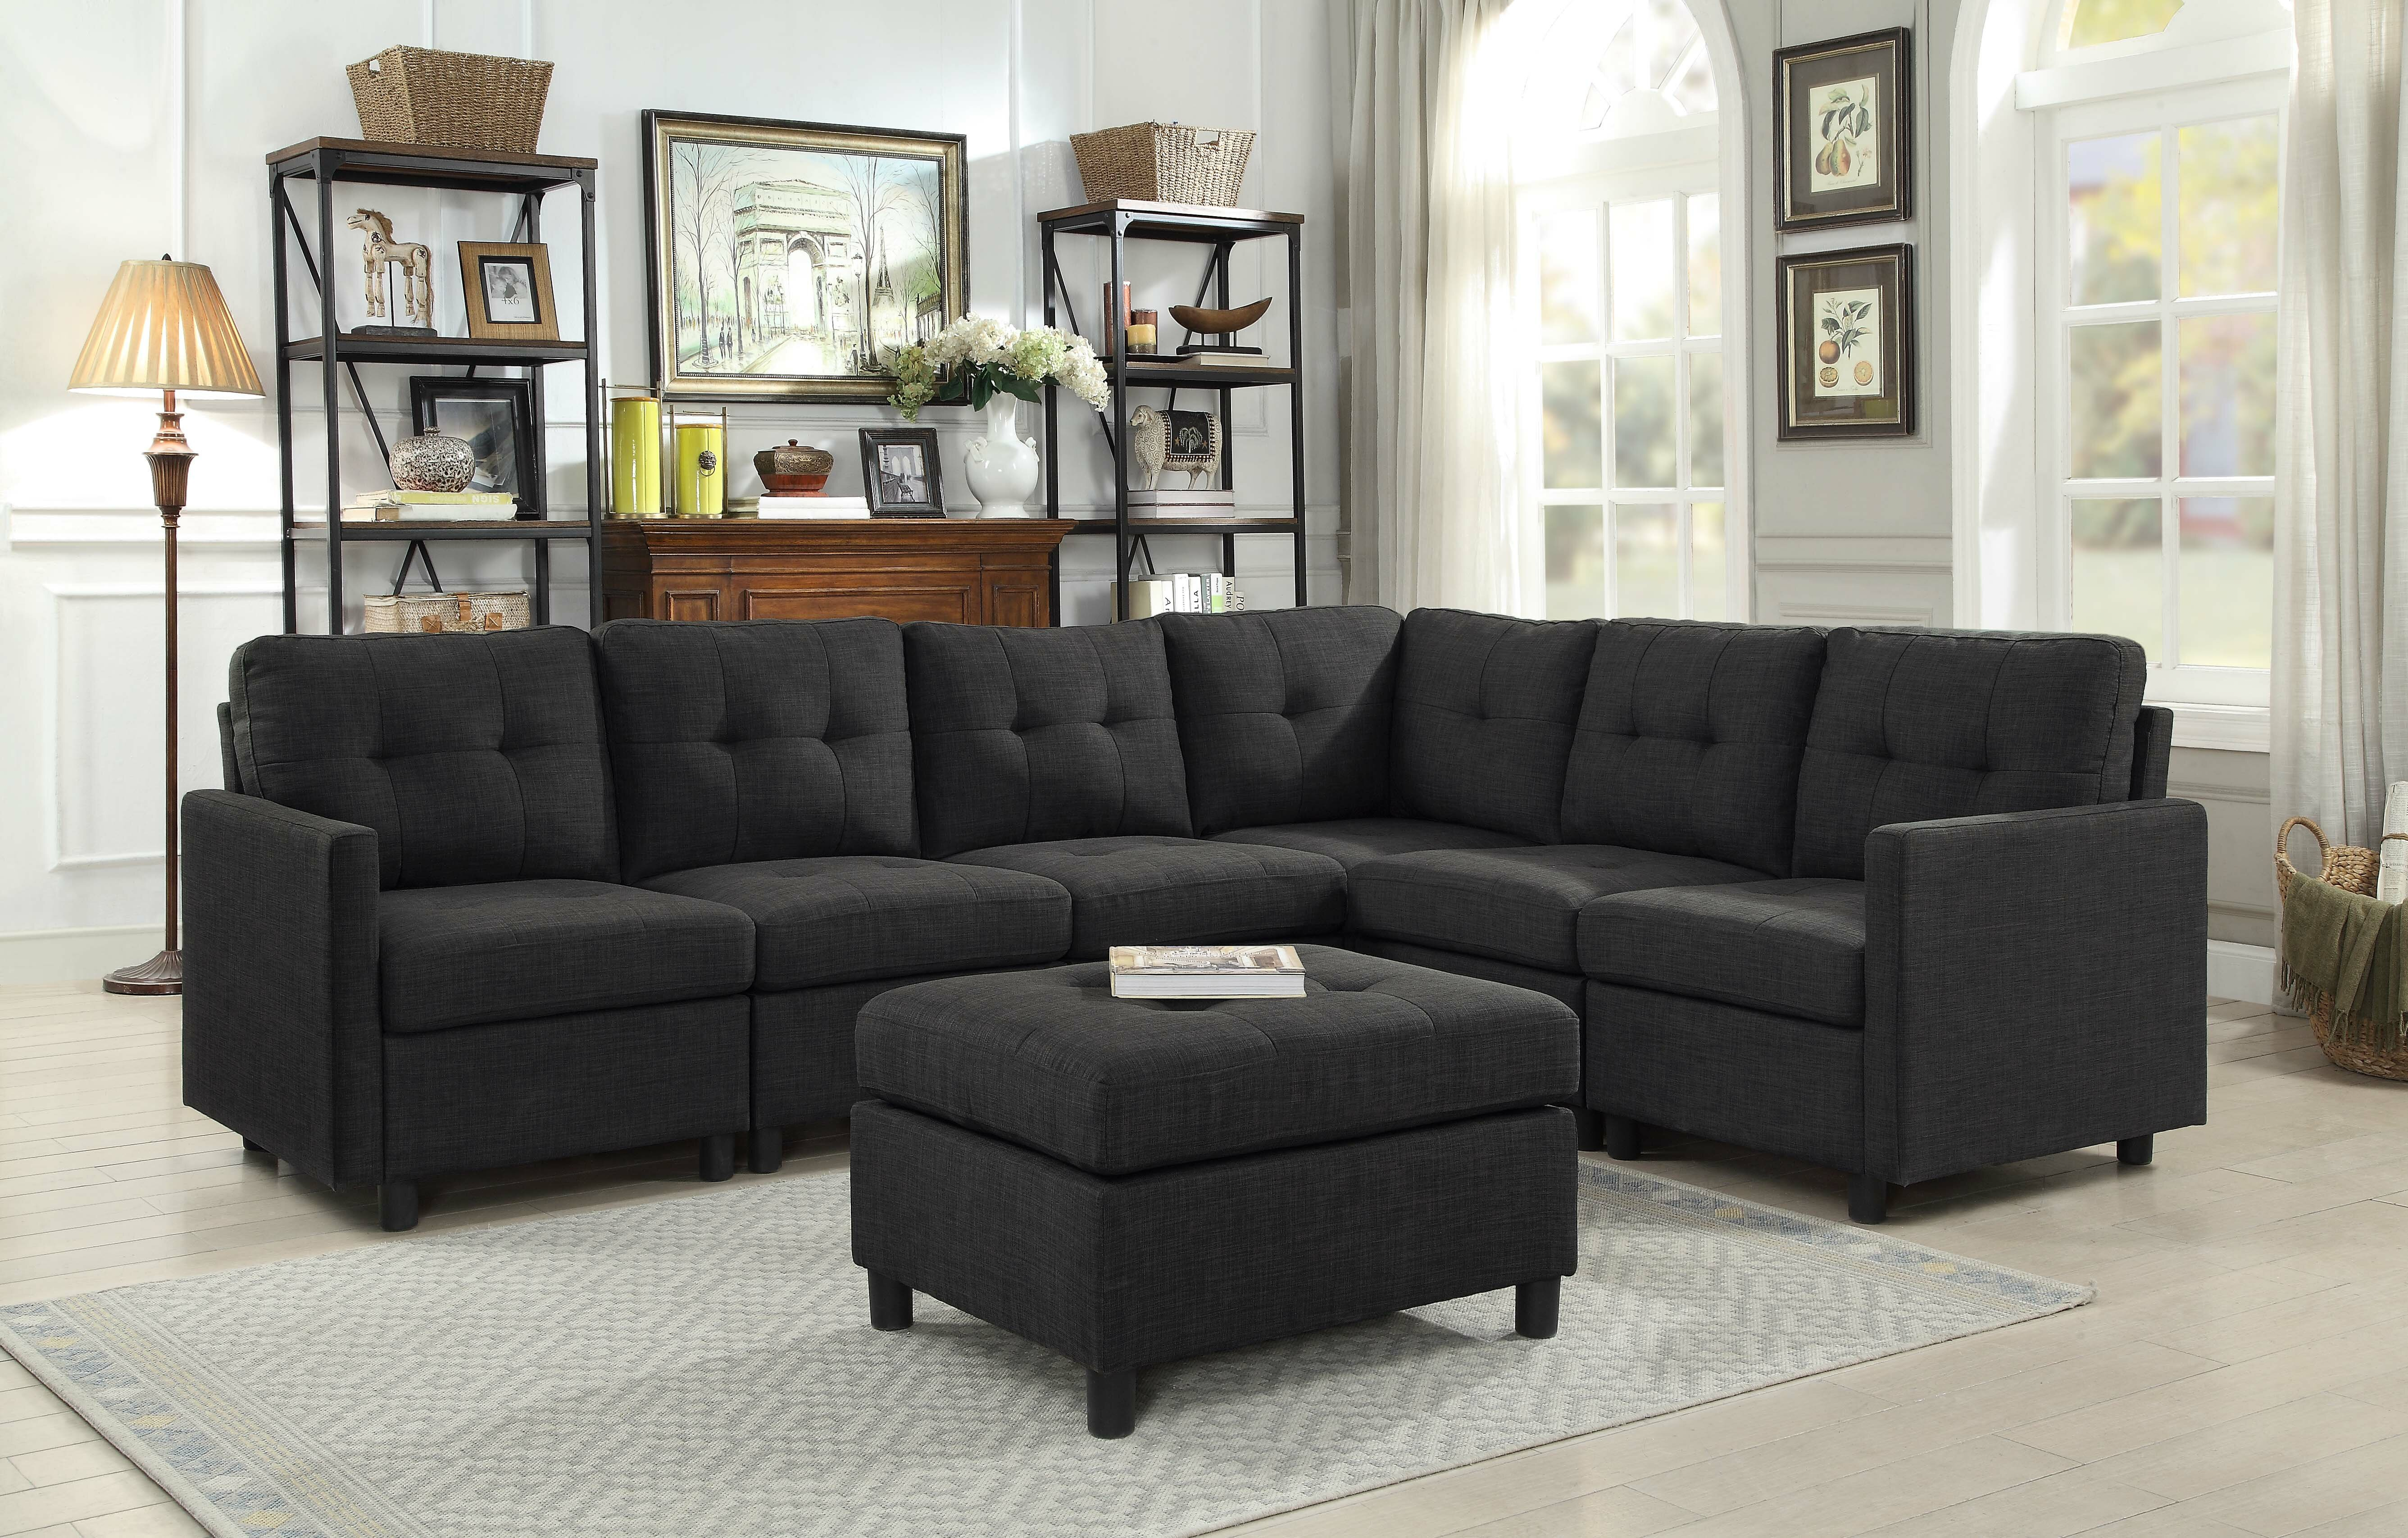 Astounding Wetherby Reversible Sectional With Ottoman Pabps2019 Chair Design Images Pabps2019Com